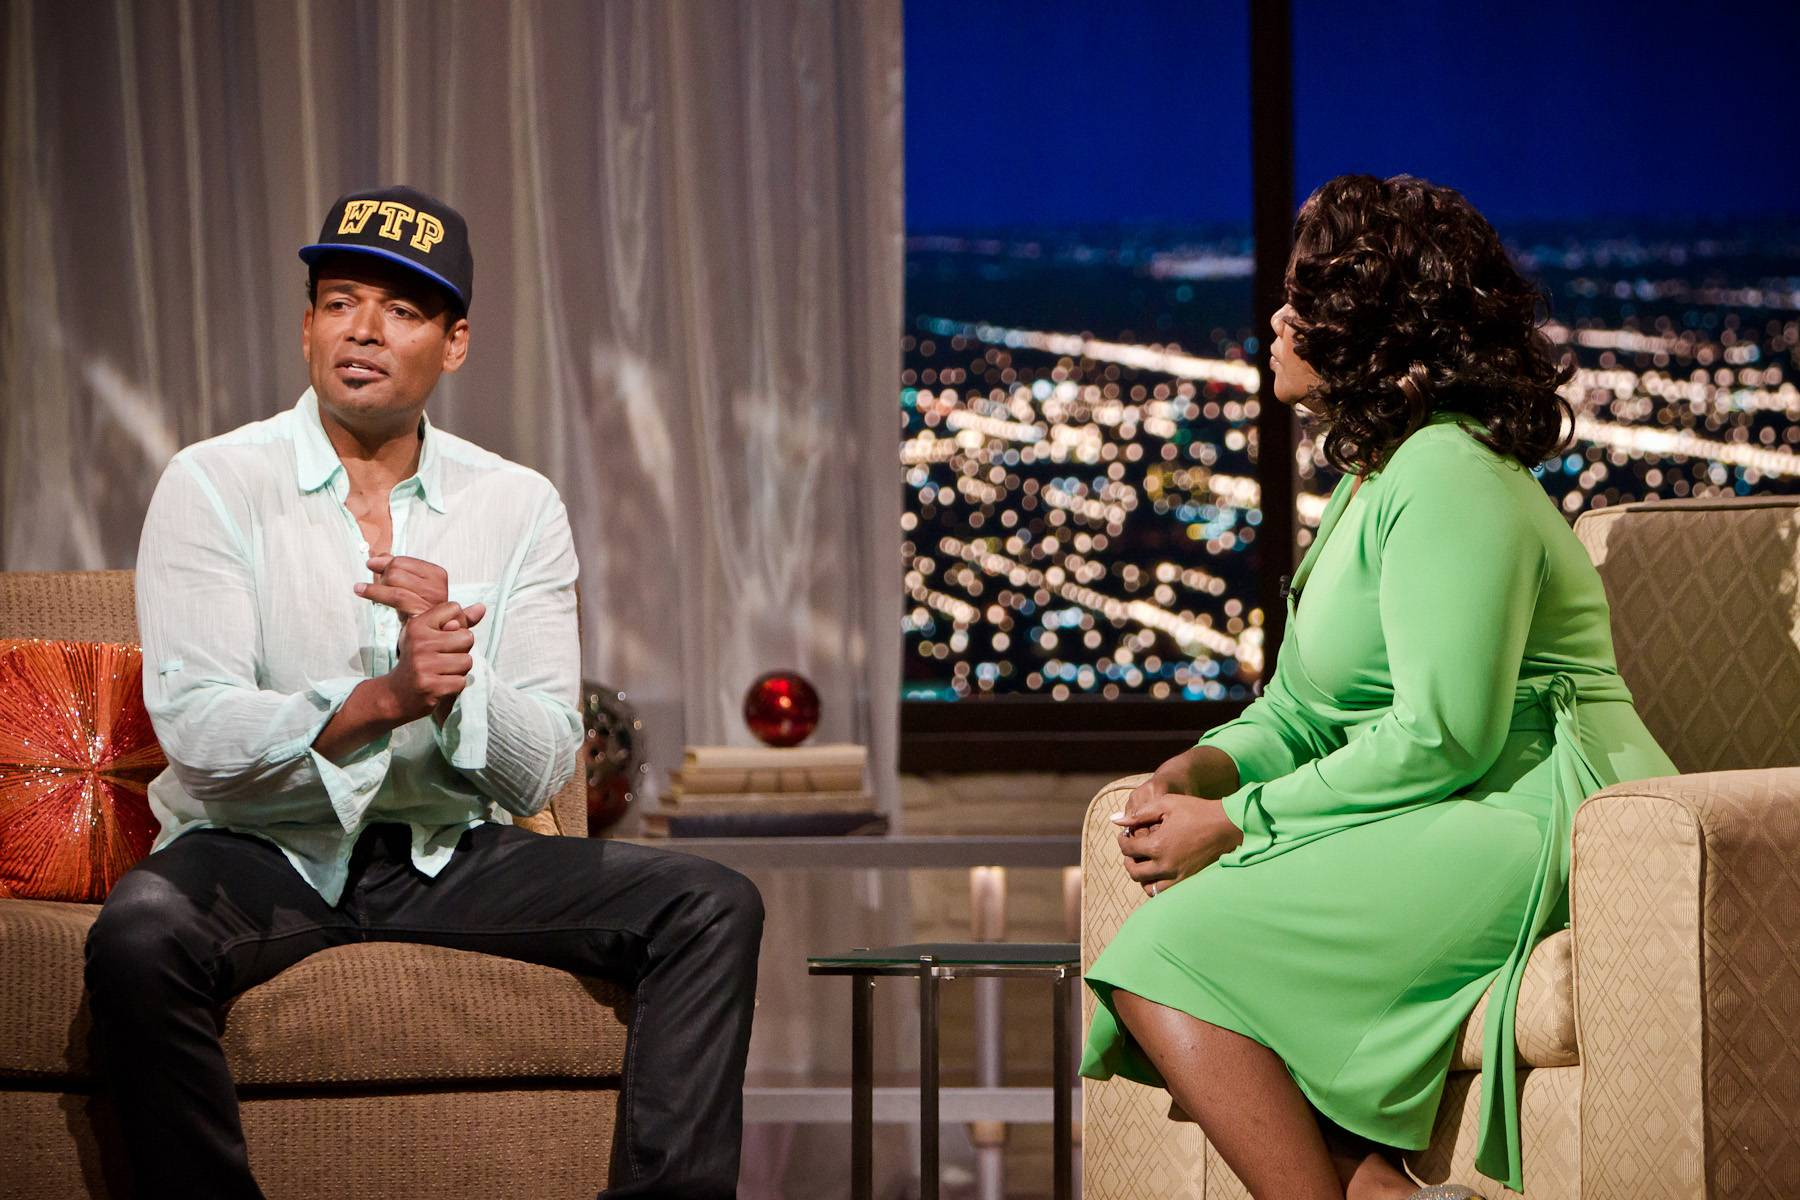 Running These Streets - Mo'Nique took a moment to discuss Van Peebles' appearance on The Game. During the episode, his character and Tasha Mack (portrayed by Wendy Raquel Robinson) run through the streets in their undergarments.(Photo: Darnell Williams/BET)